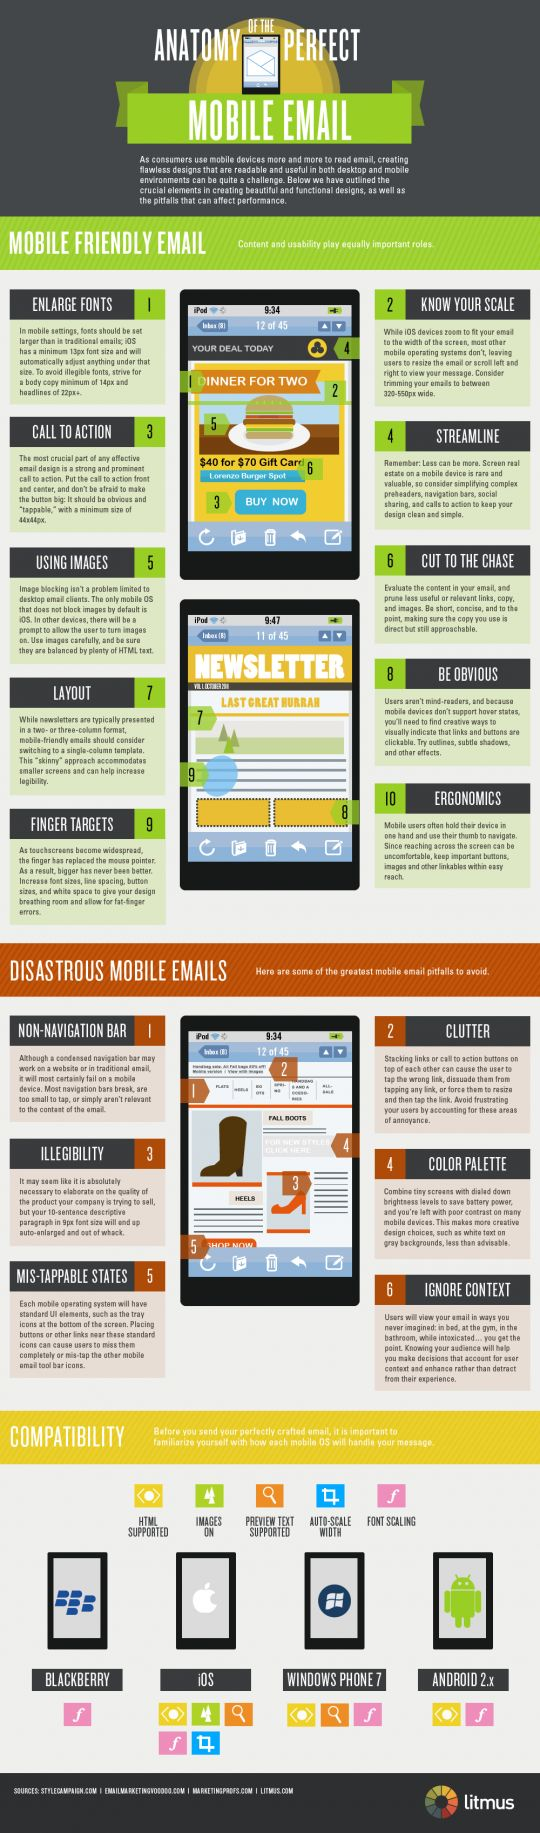 Anatomy of the perfect mobile mail